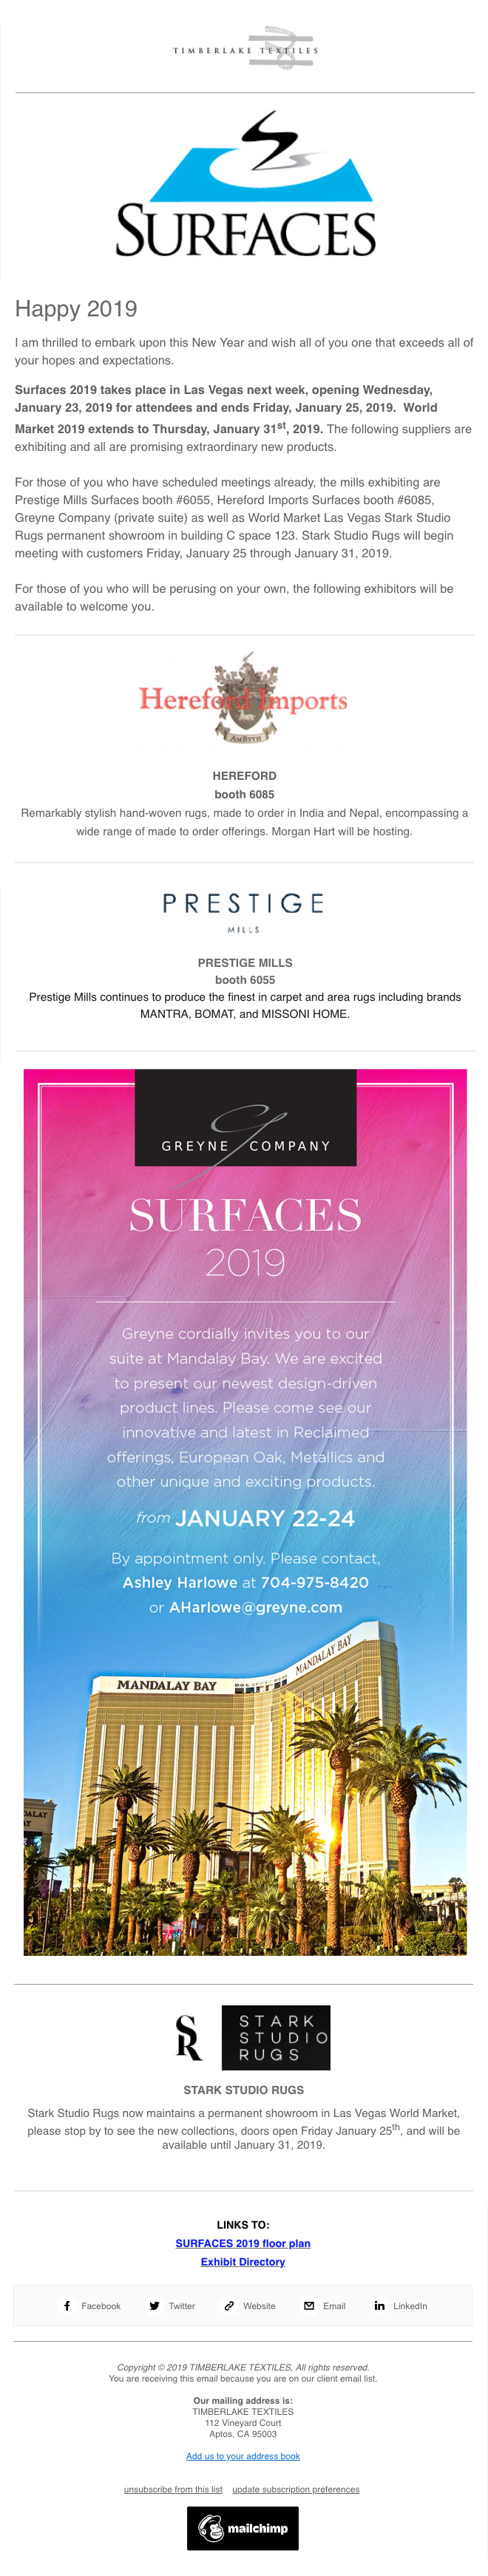 Surfaces 2019 post image